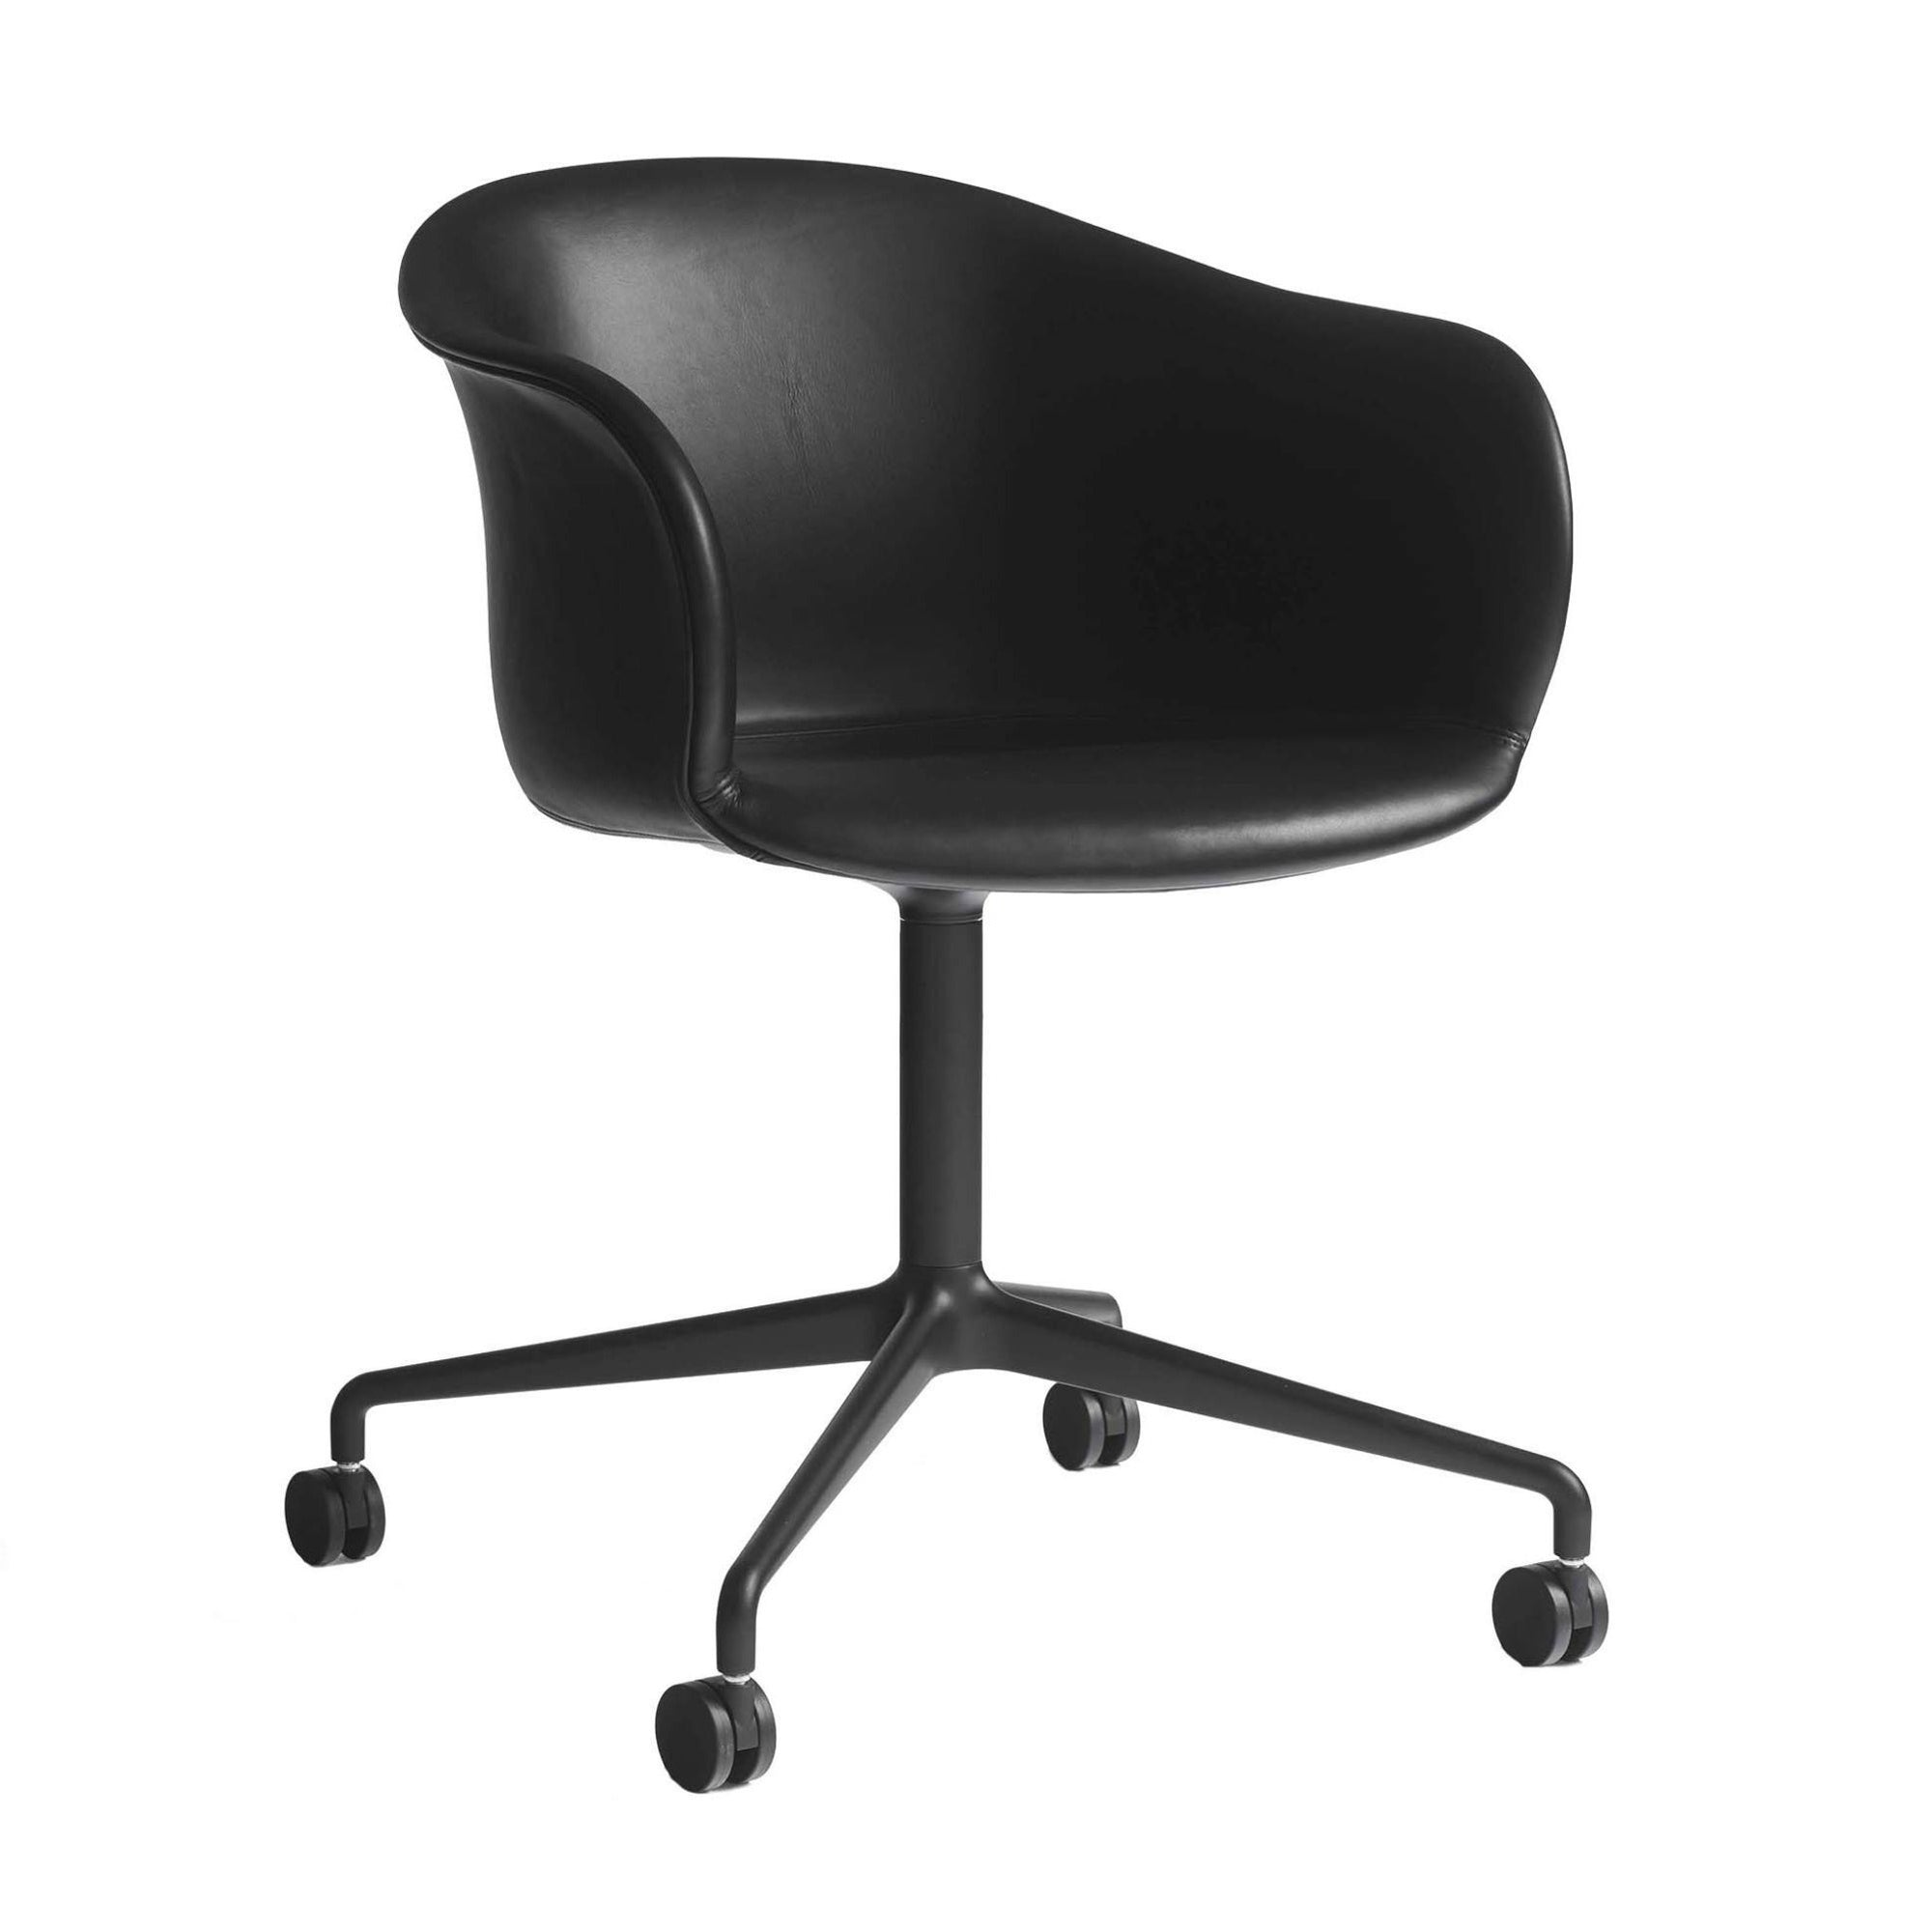 &Tradition Elefy JH37 chair, swivel base, silk black leather, black base